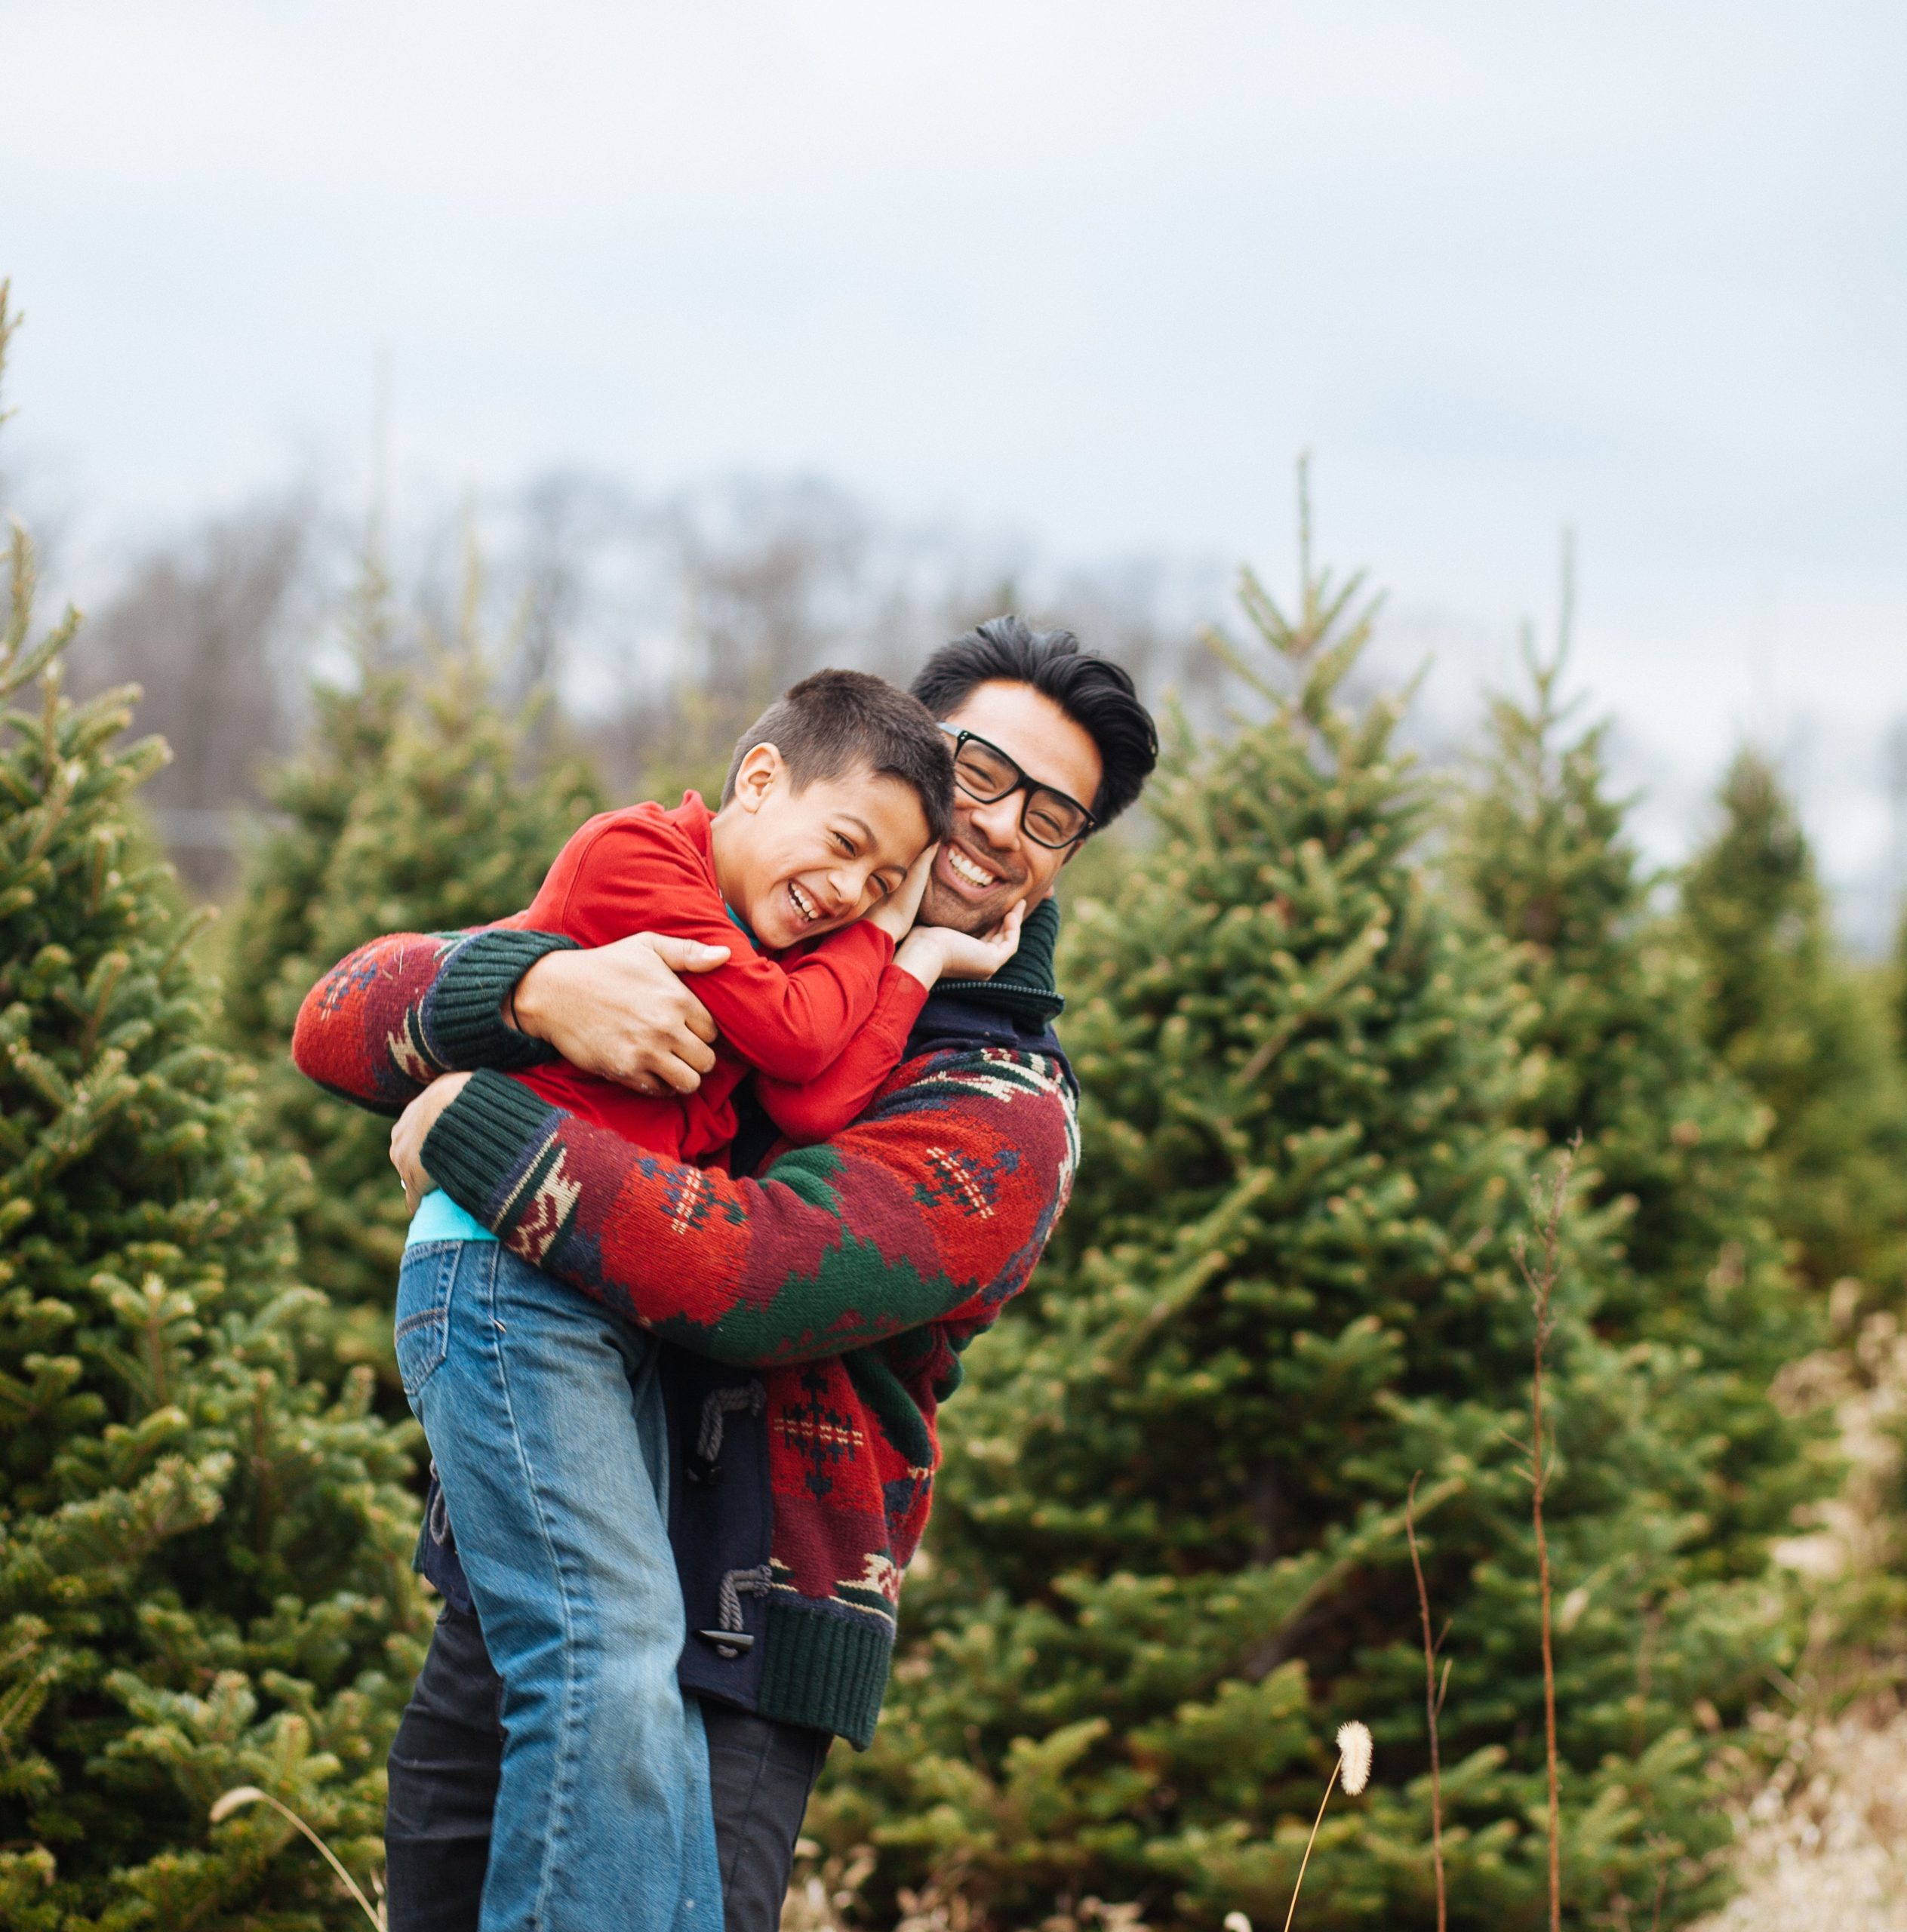 Co-parenting: a parent picking up a laughing child in front of a field of pine trees